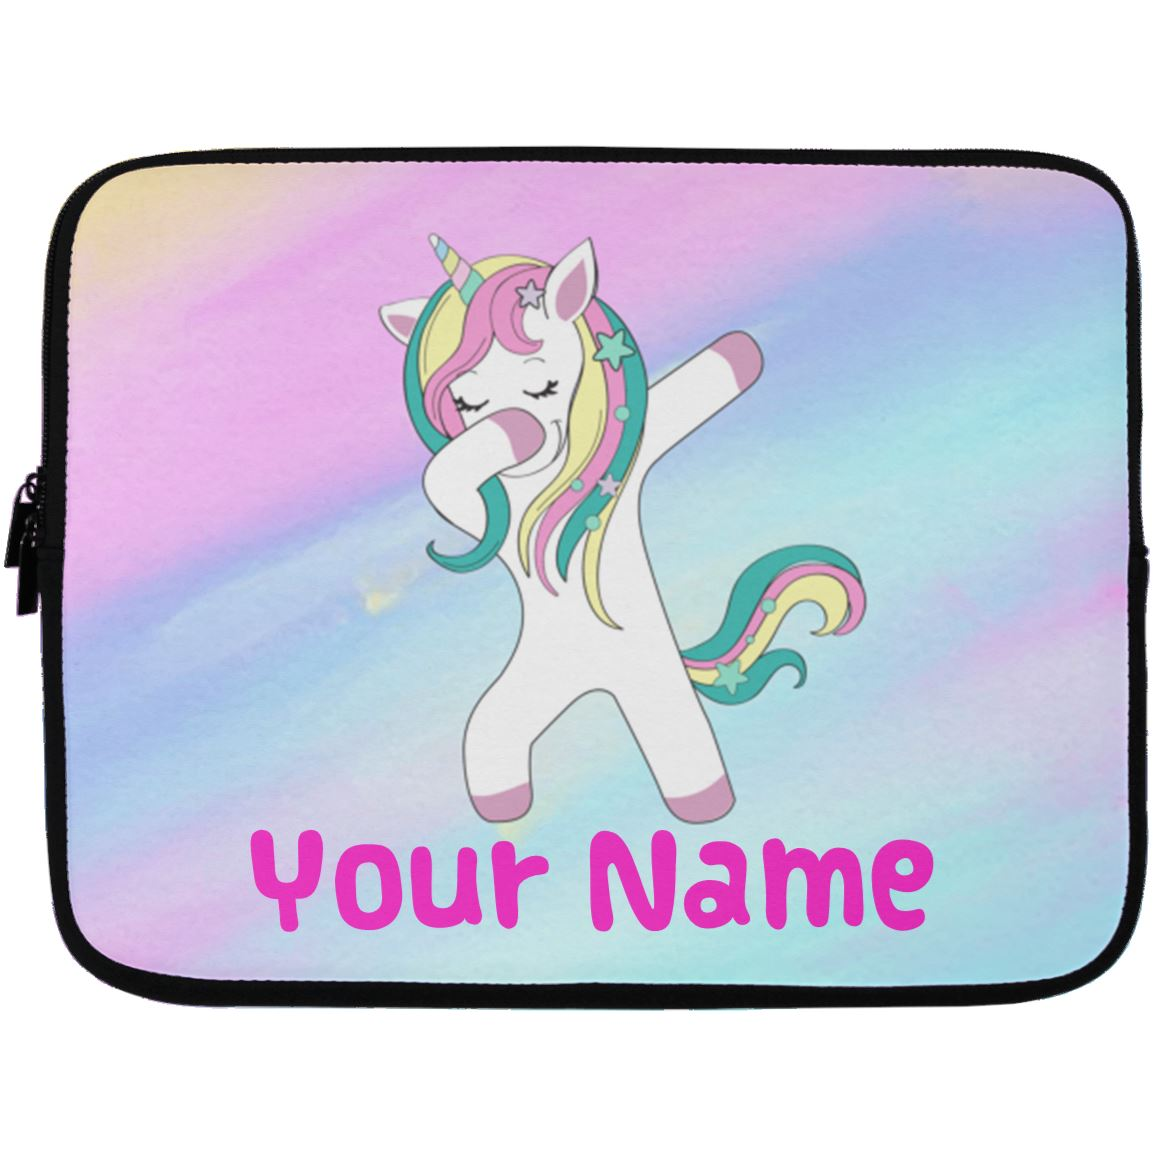 Personalized Unicorn Dabbing Laptop Sleeve Case Accessories 13 inch